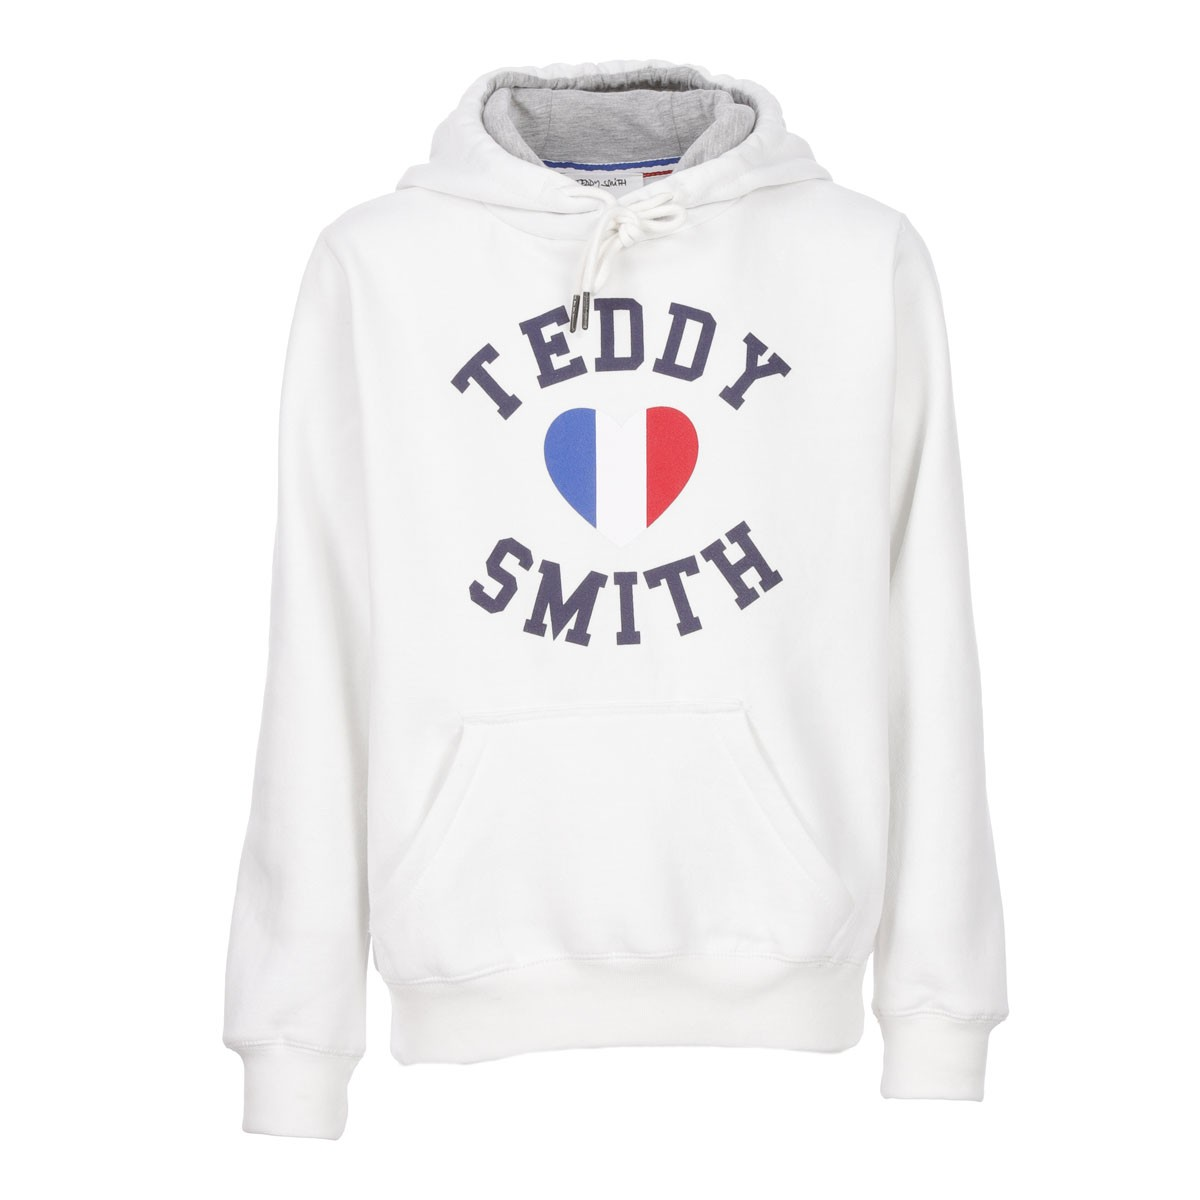 Capuche Blanc À Fille Smith Sweat Teddy GUVpqSzLM